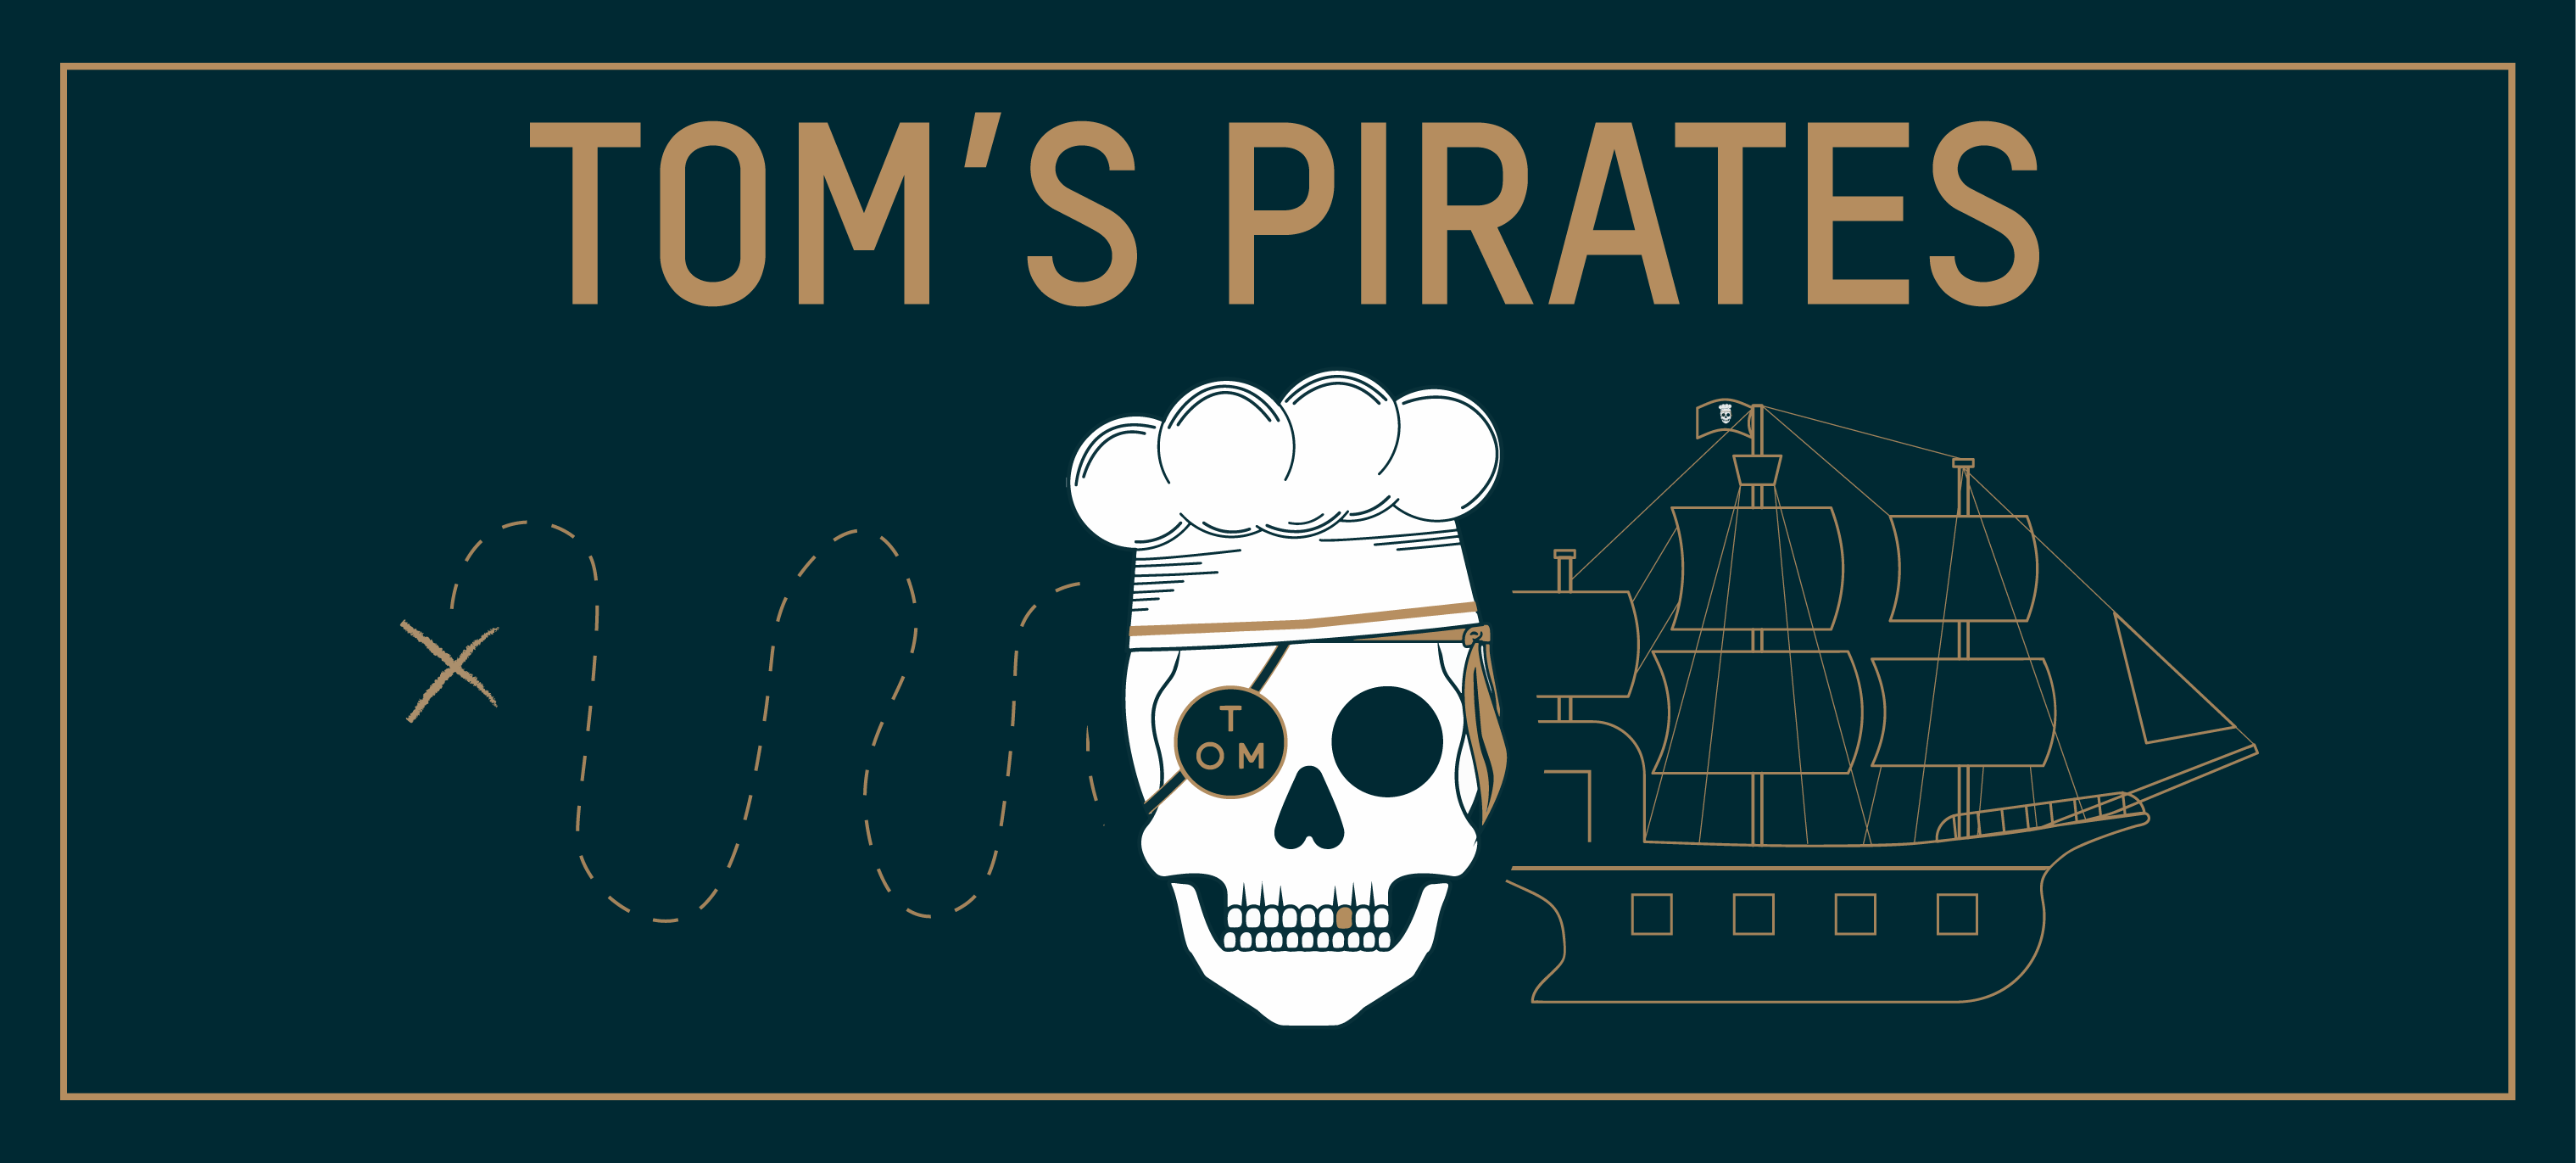 SIGN UP TO BECOME A PIRATE…